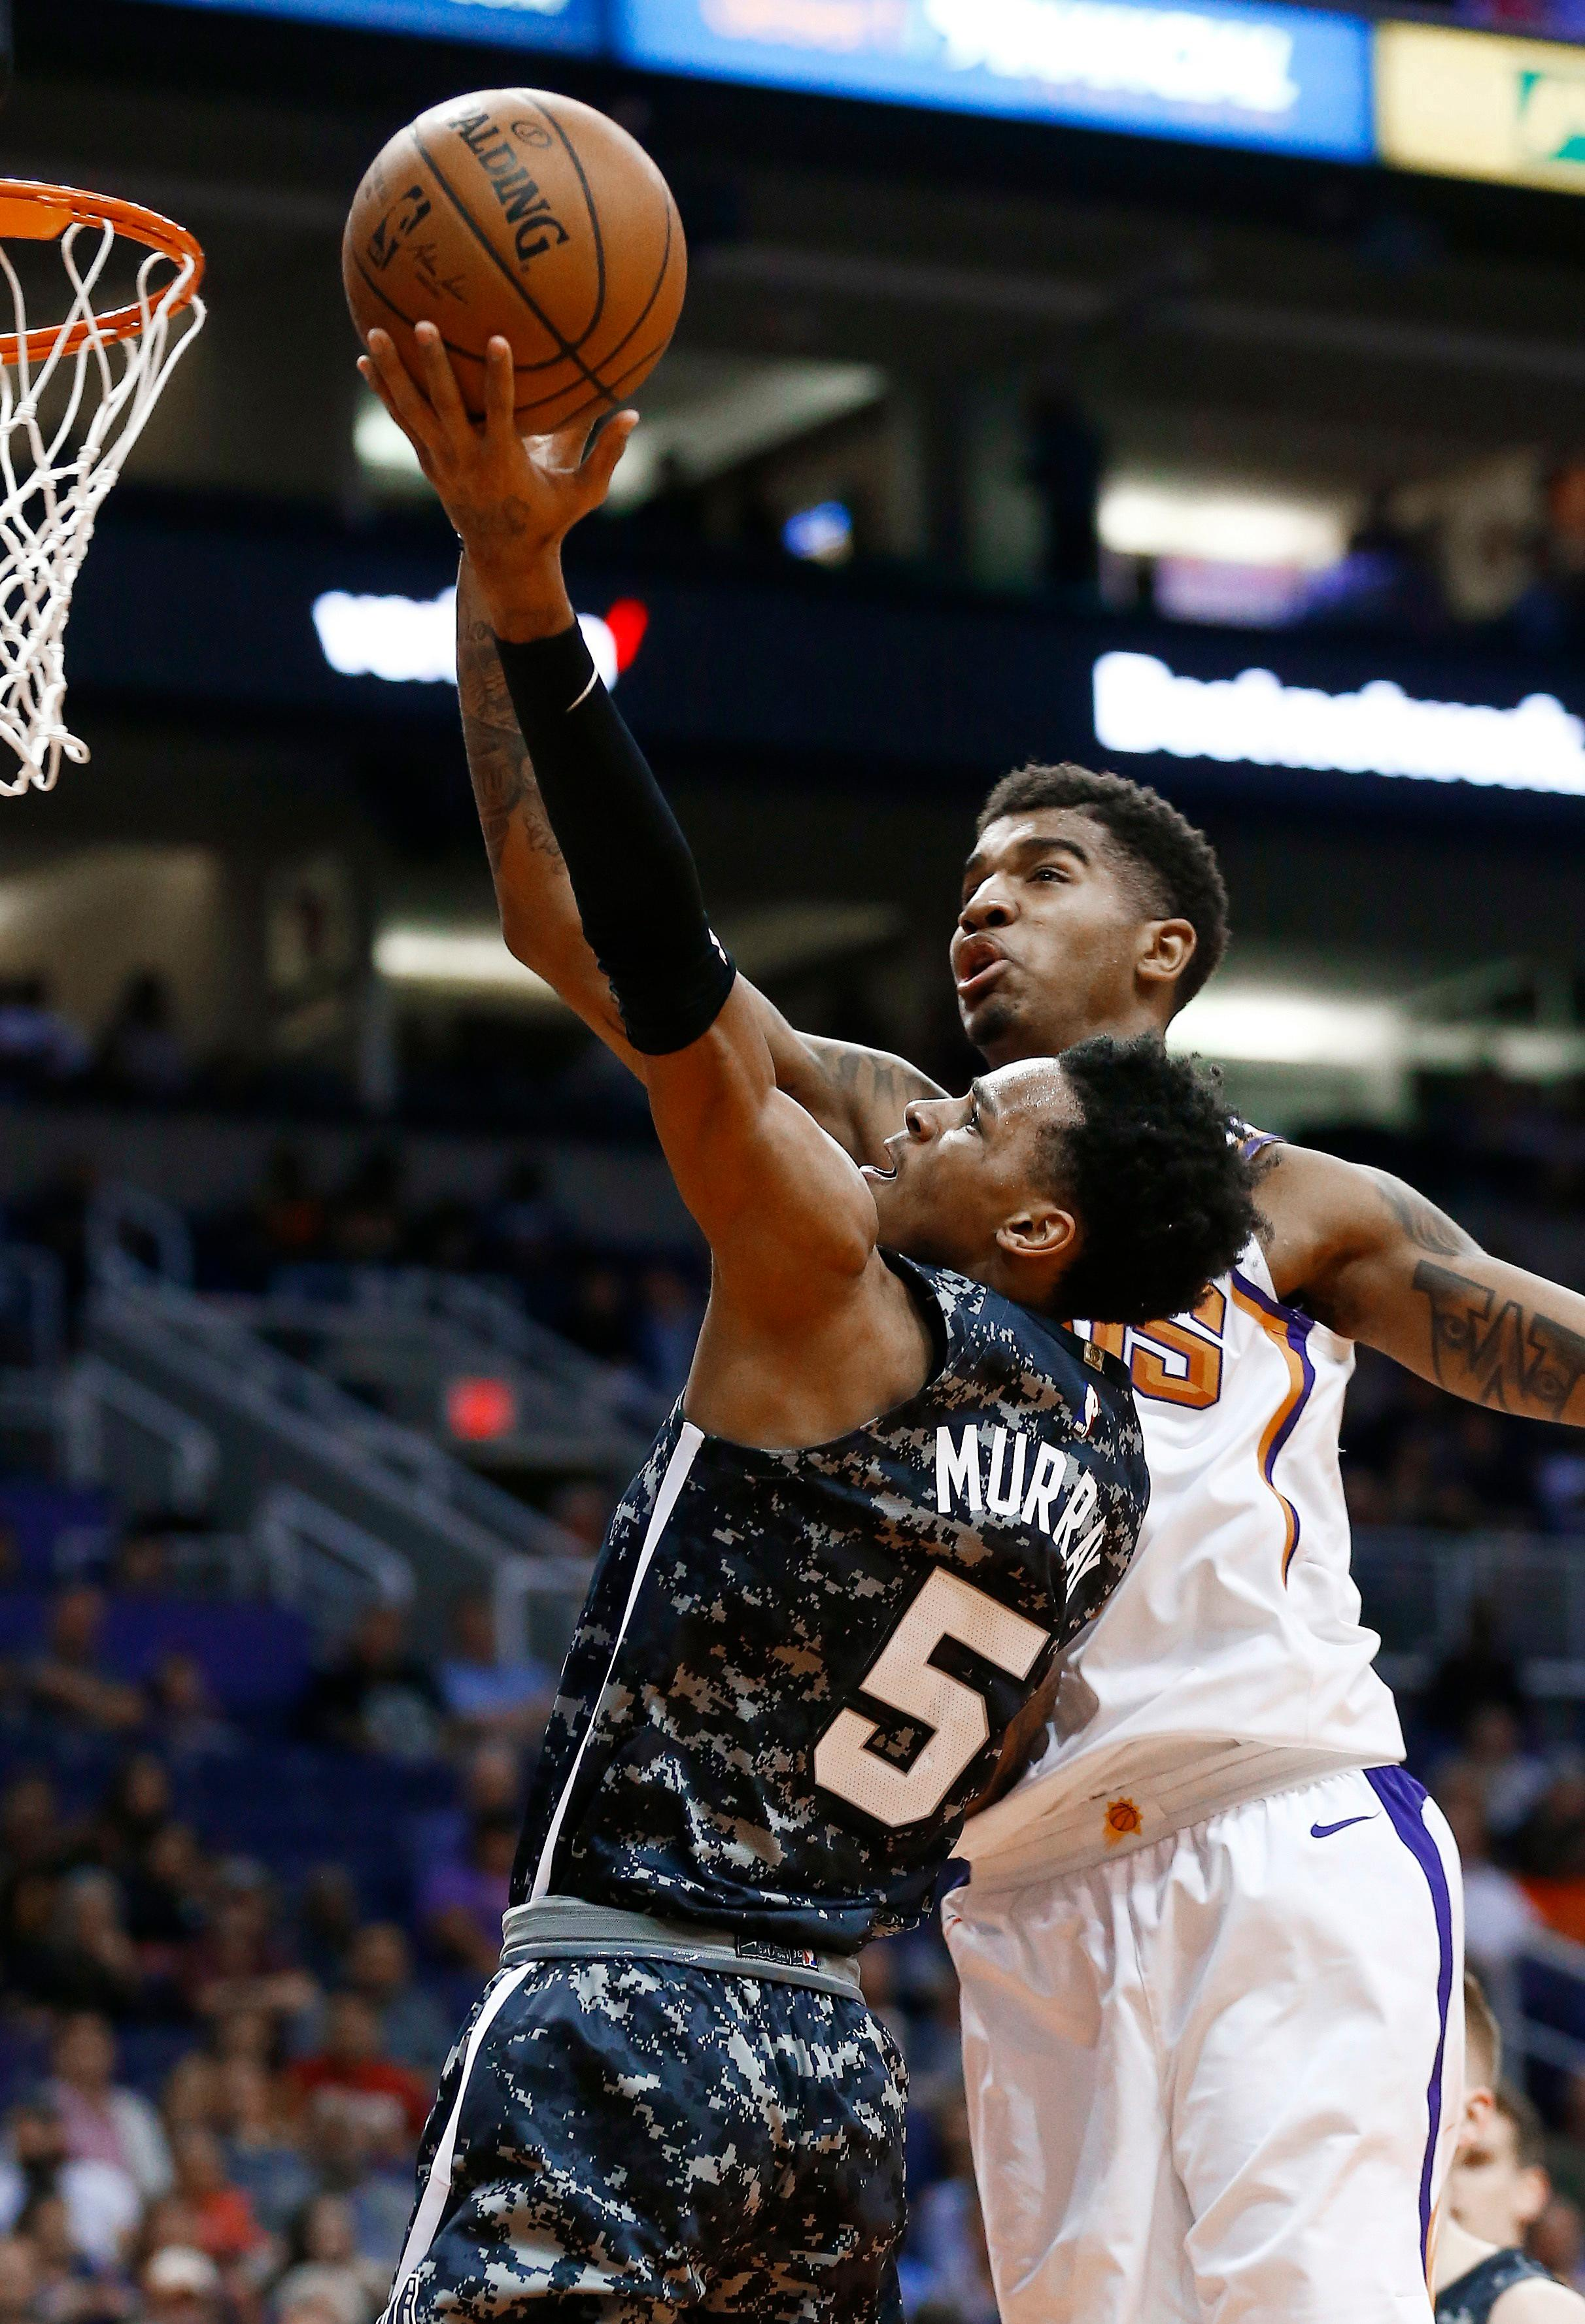 San Antonio Spurs guard Dejounte Murray (5) drives past Phoenix Suns forward Marquese Chriss, right, to score during the first half of an NBA basketball game Wednesday, Feb. 7, 2018, in Phoenix. (AP Photo/Ross D. Franklin)